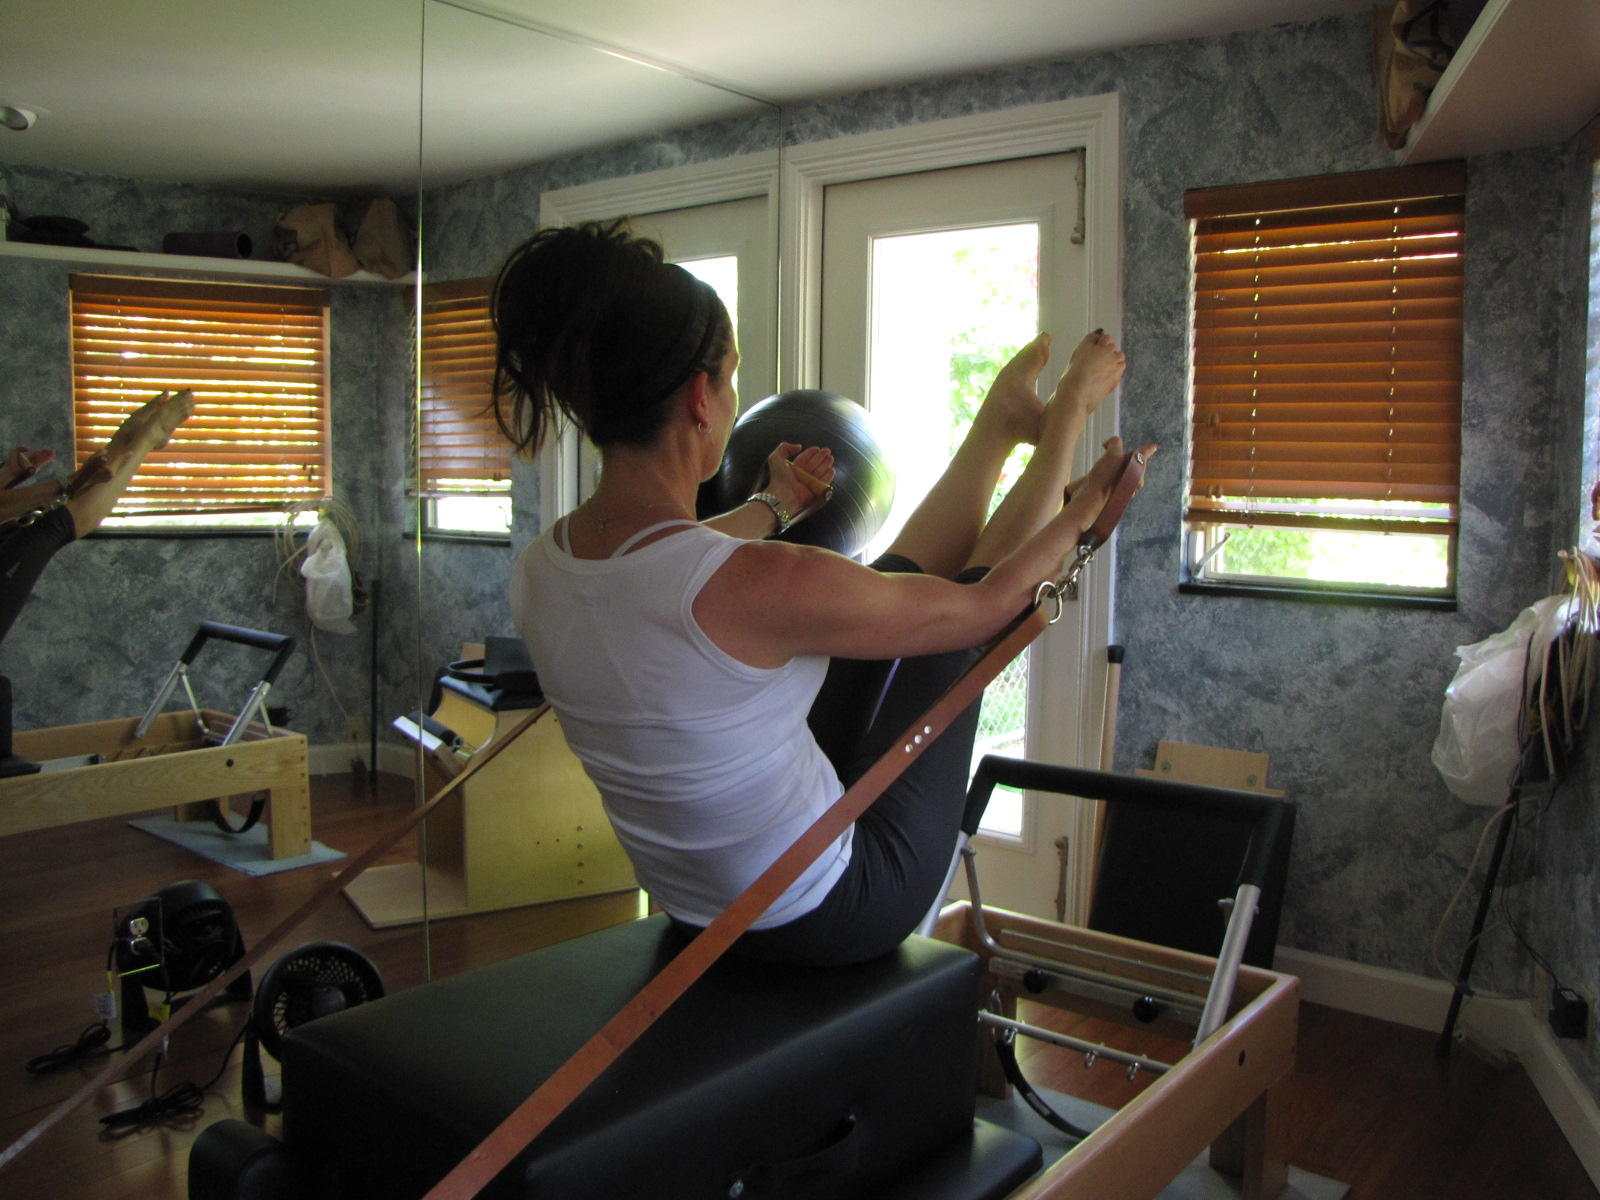 Reformer is Life!